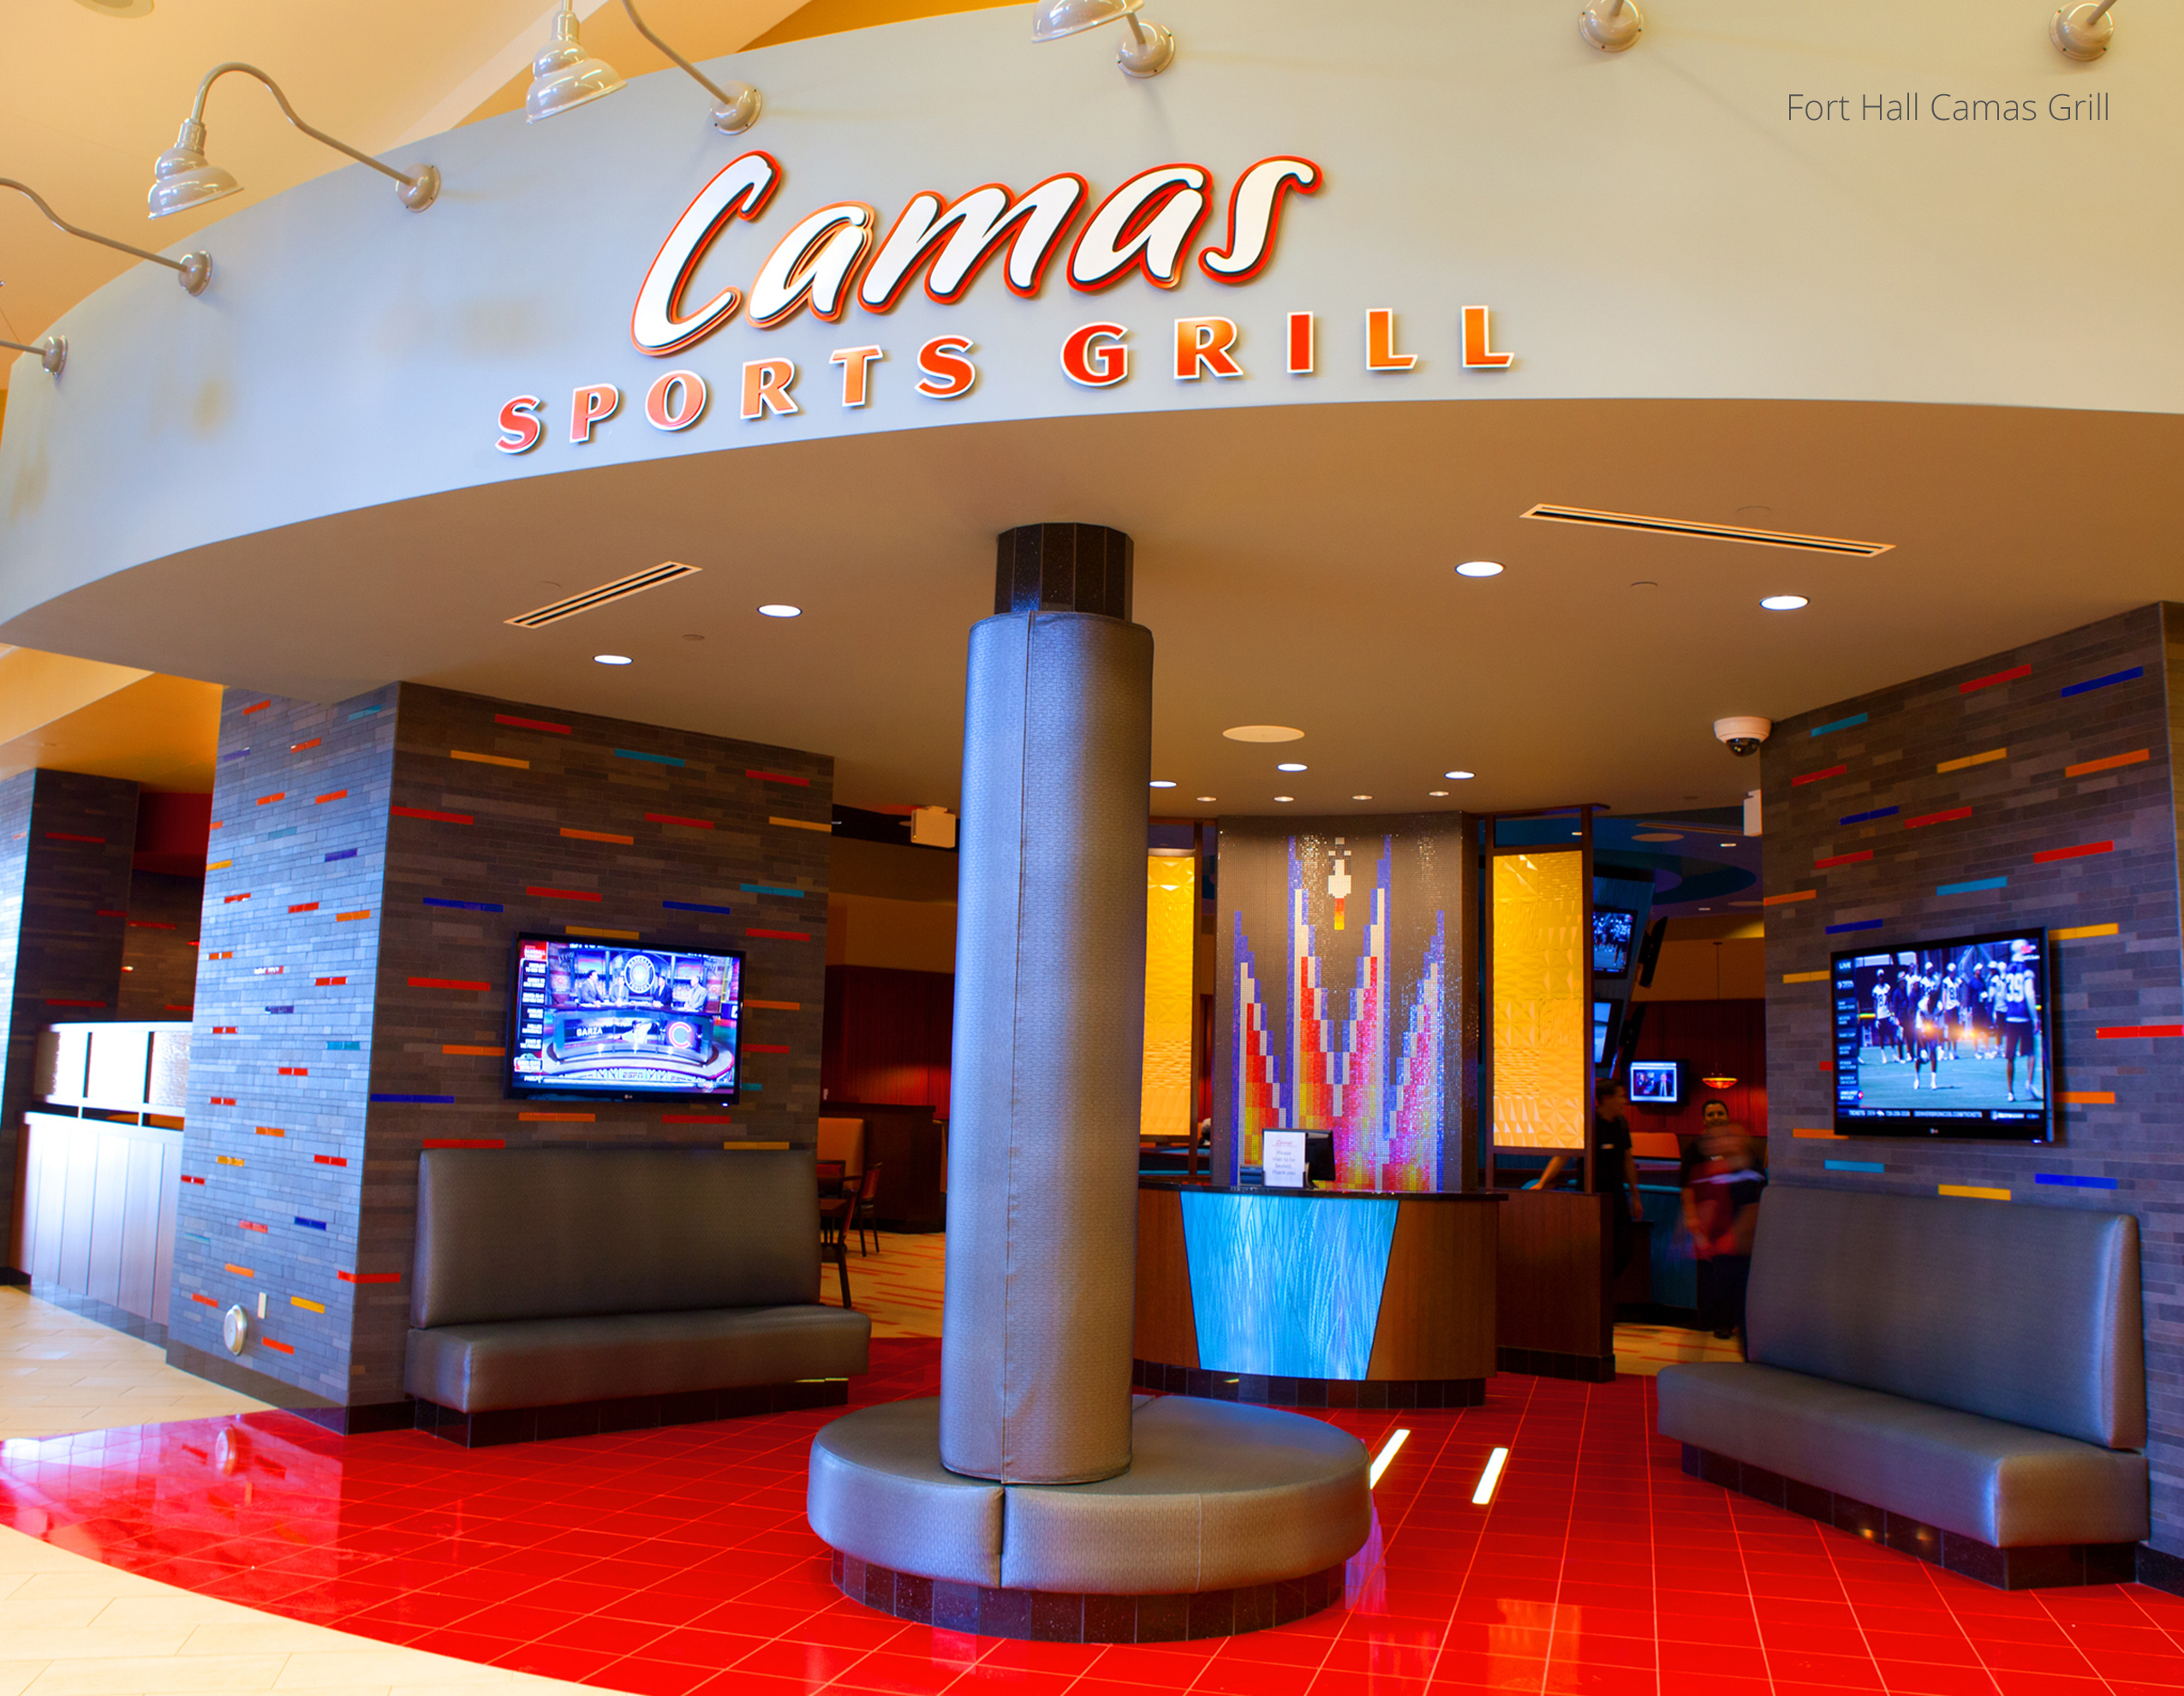 Fort Hall Camas Grill